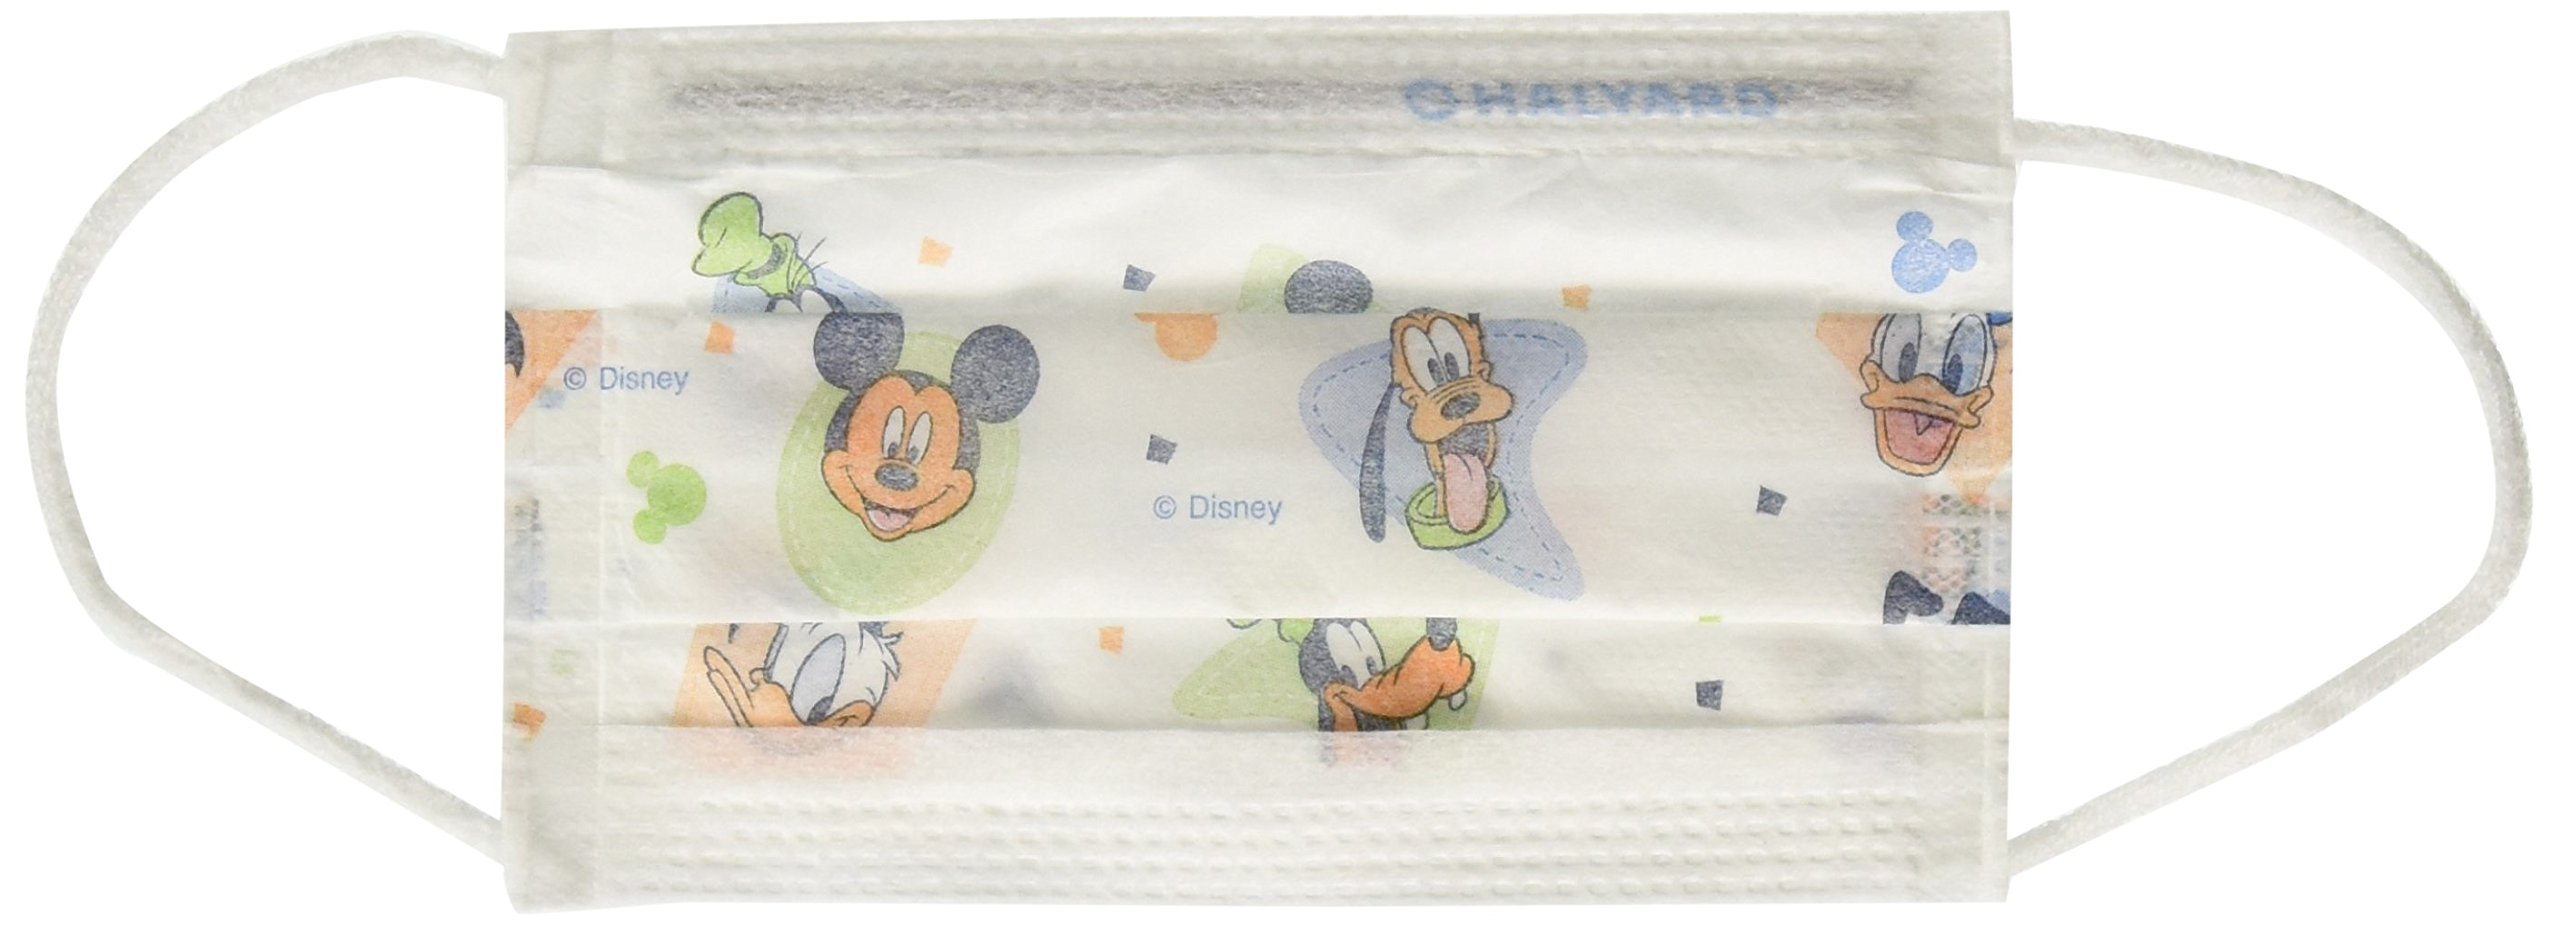 kimberly clark surgical mask kids